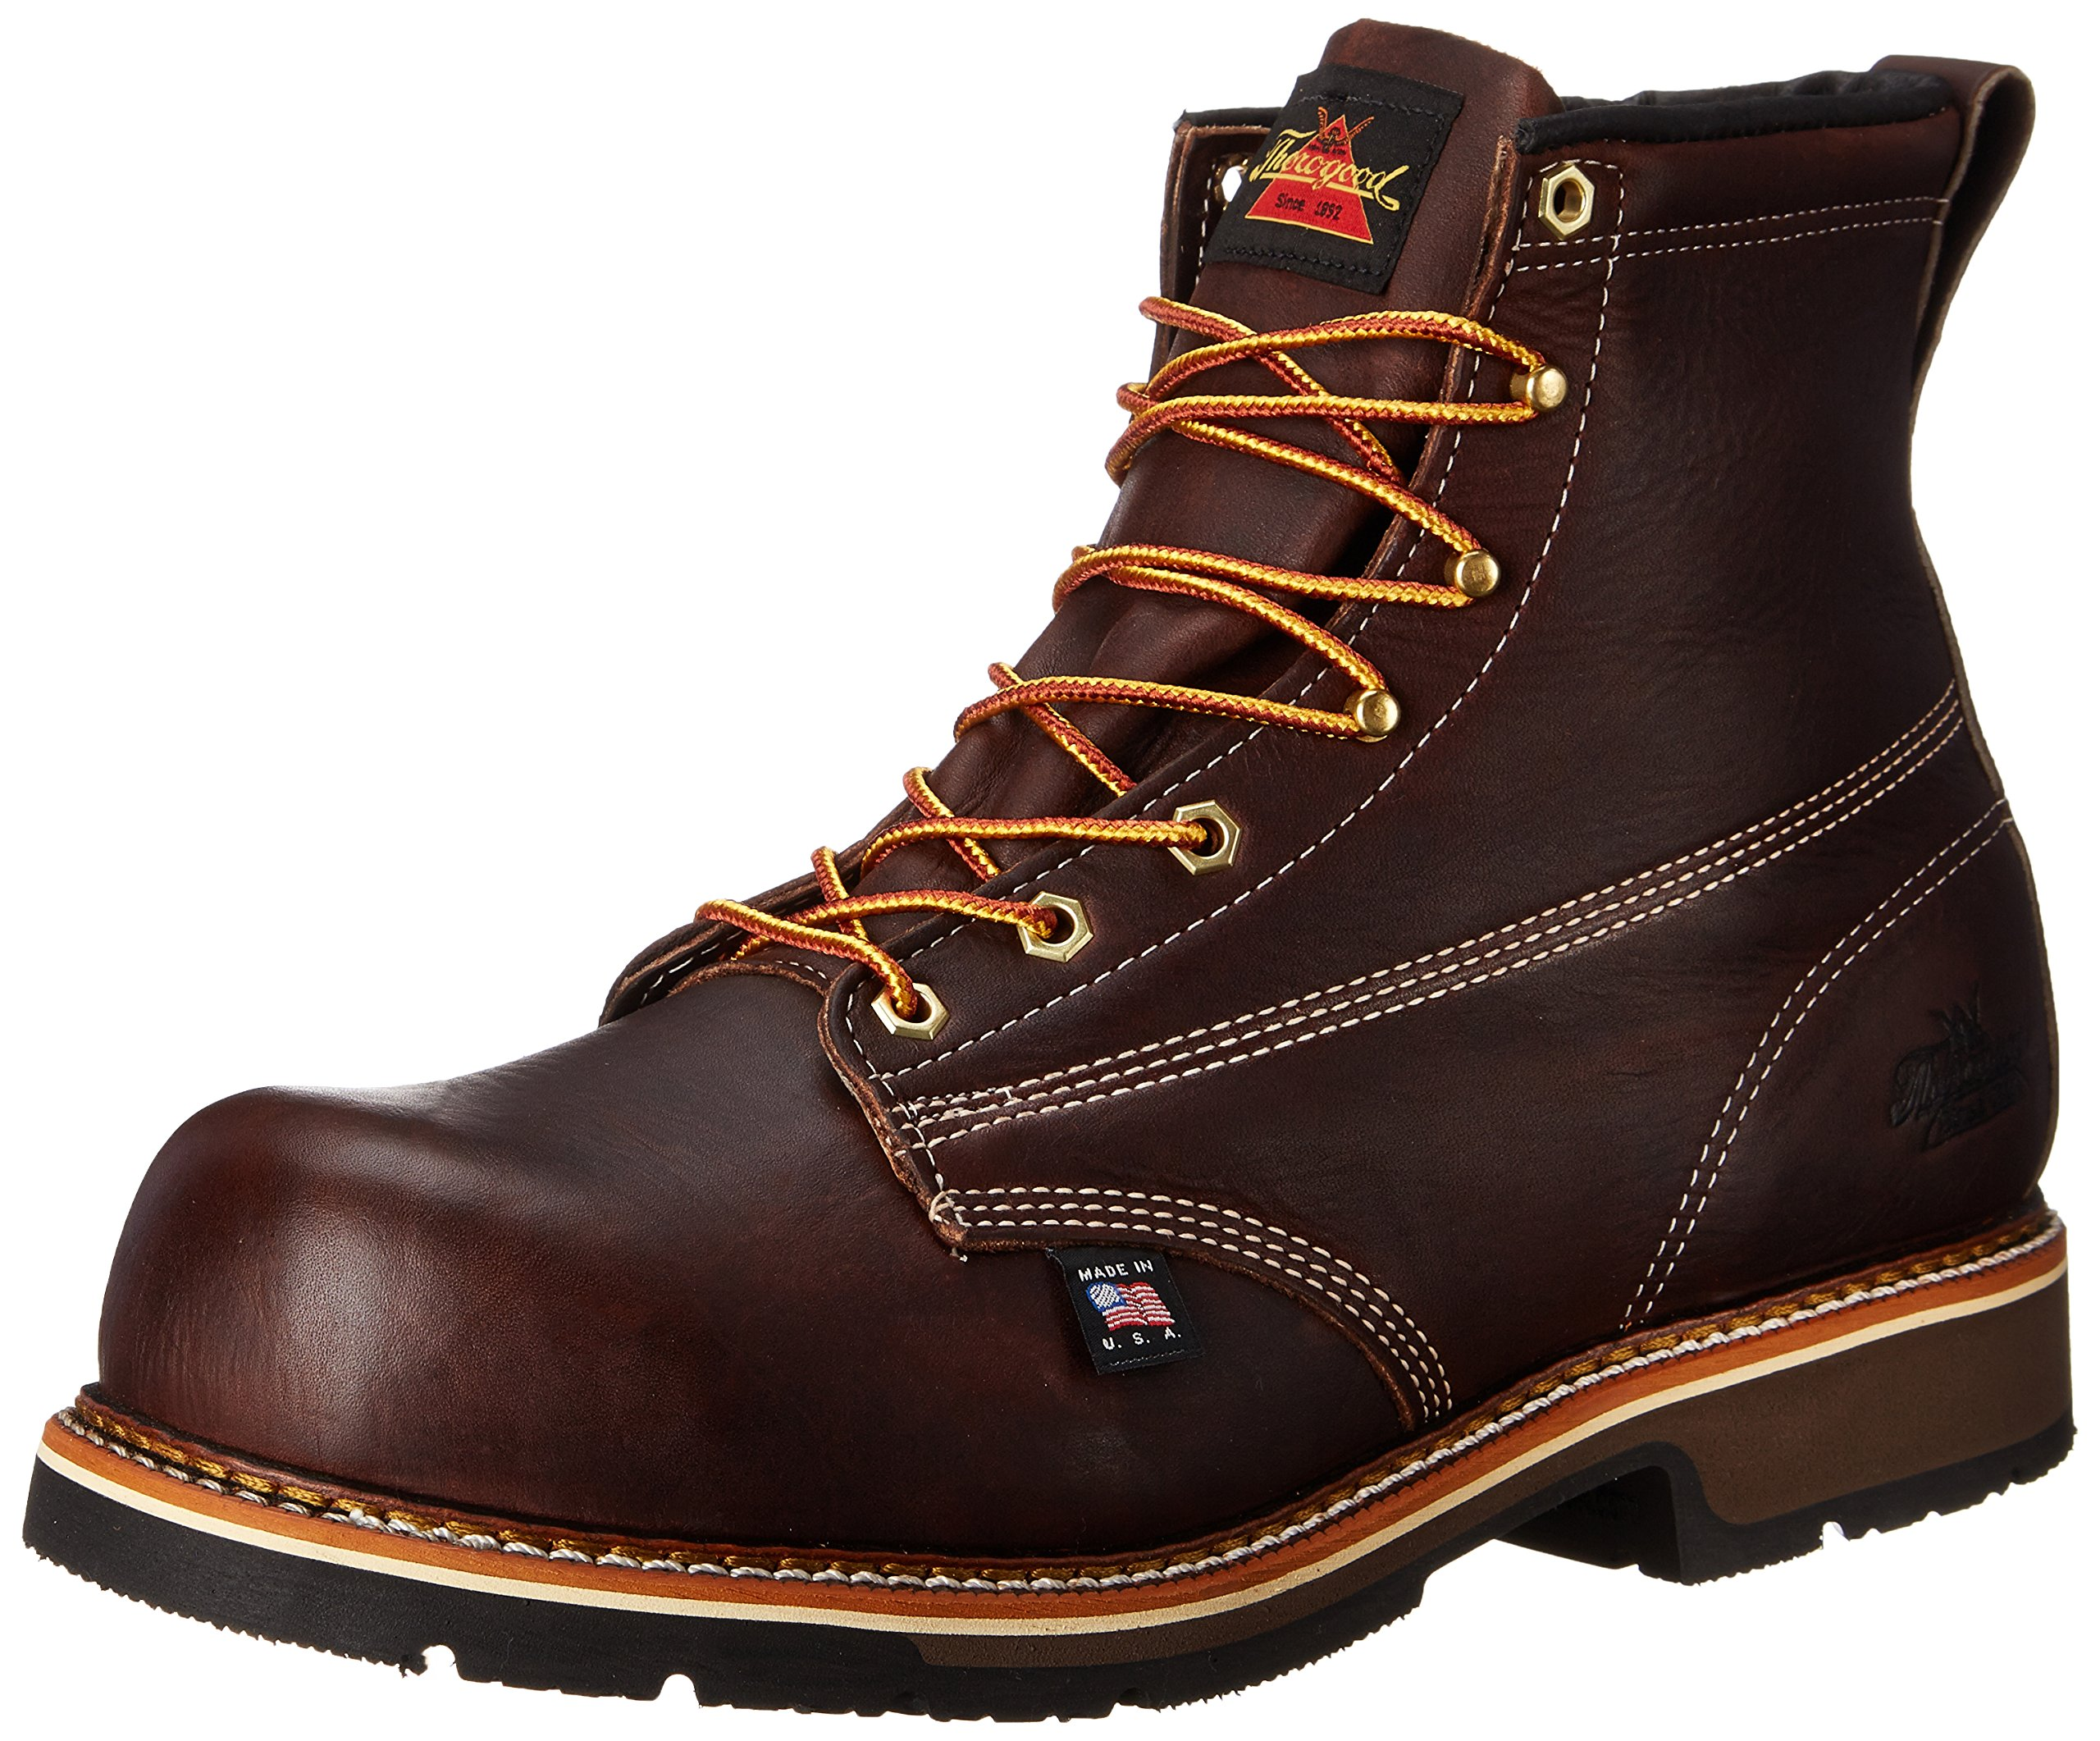 Thorogood Men's American Heritage 6 Inch Safety Toe Lace-up Boot,Brown,10.5 D US